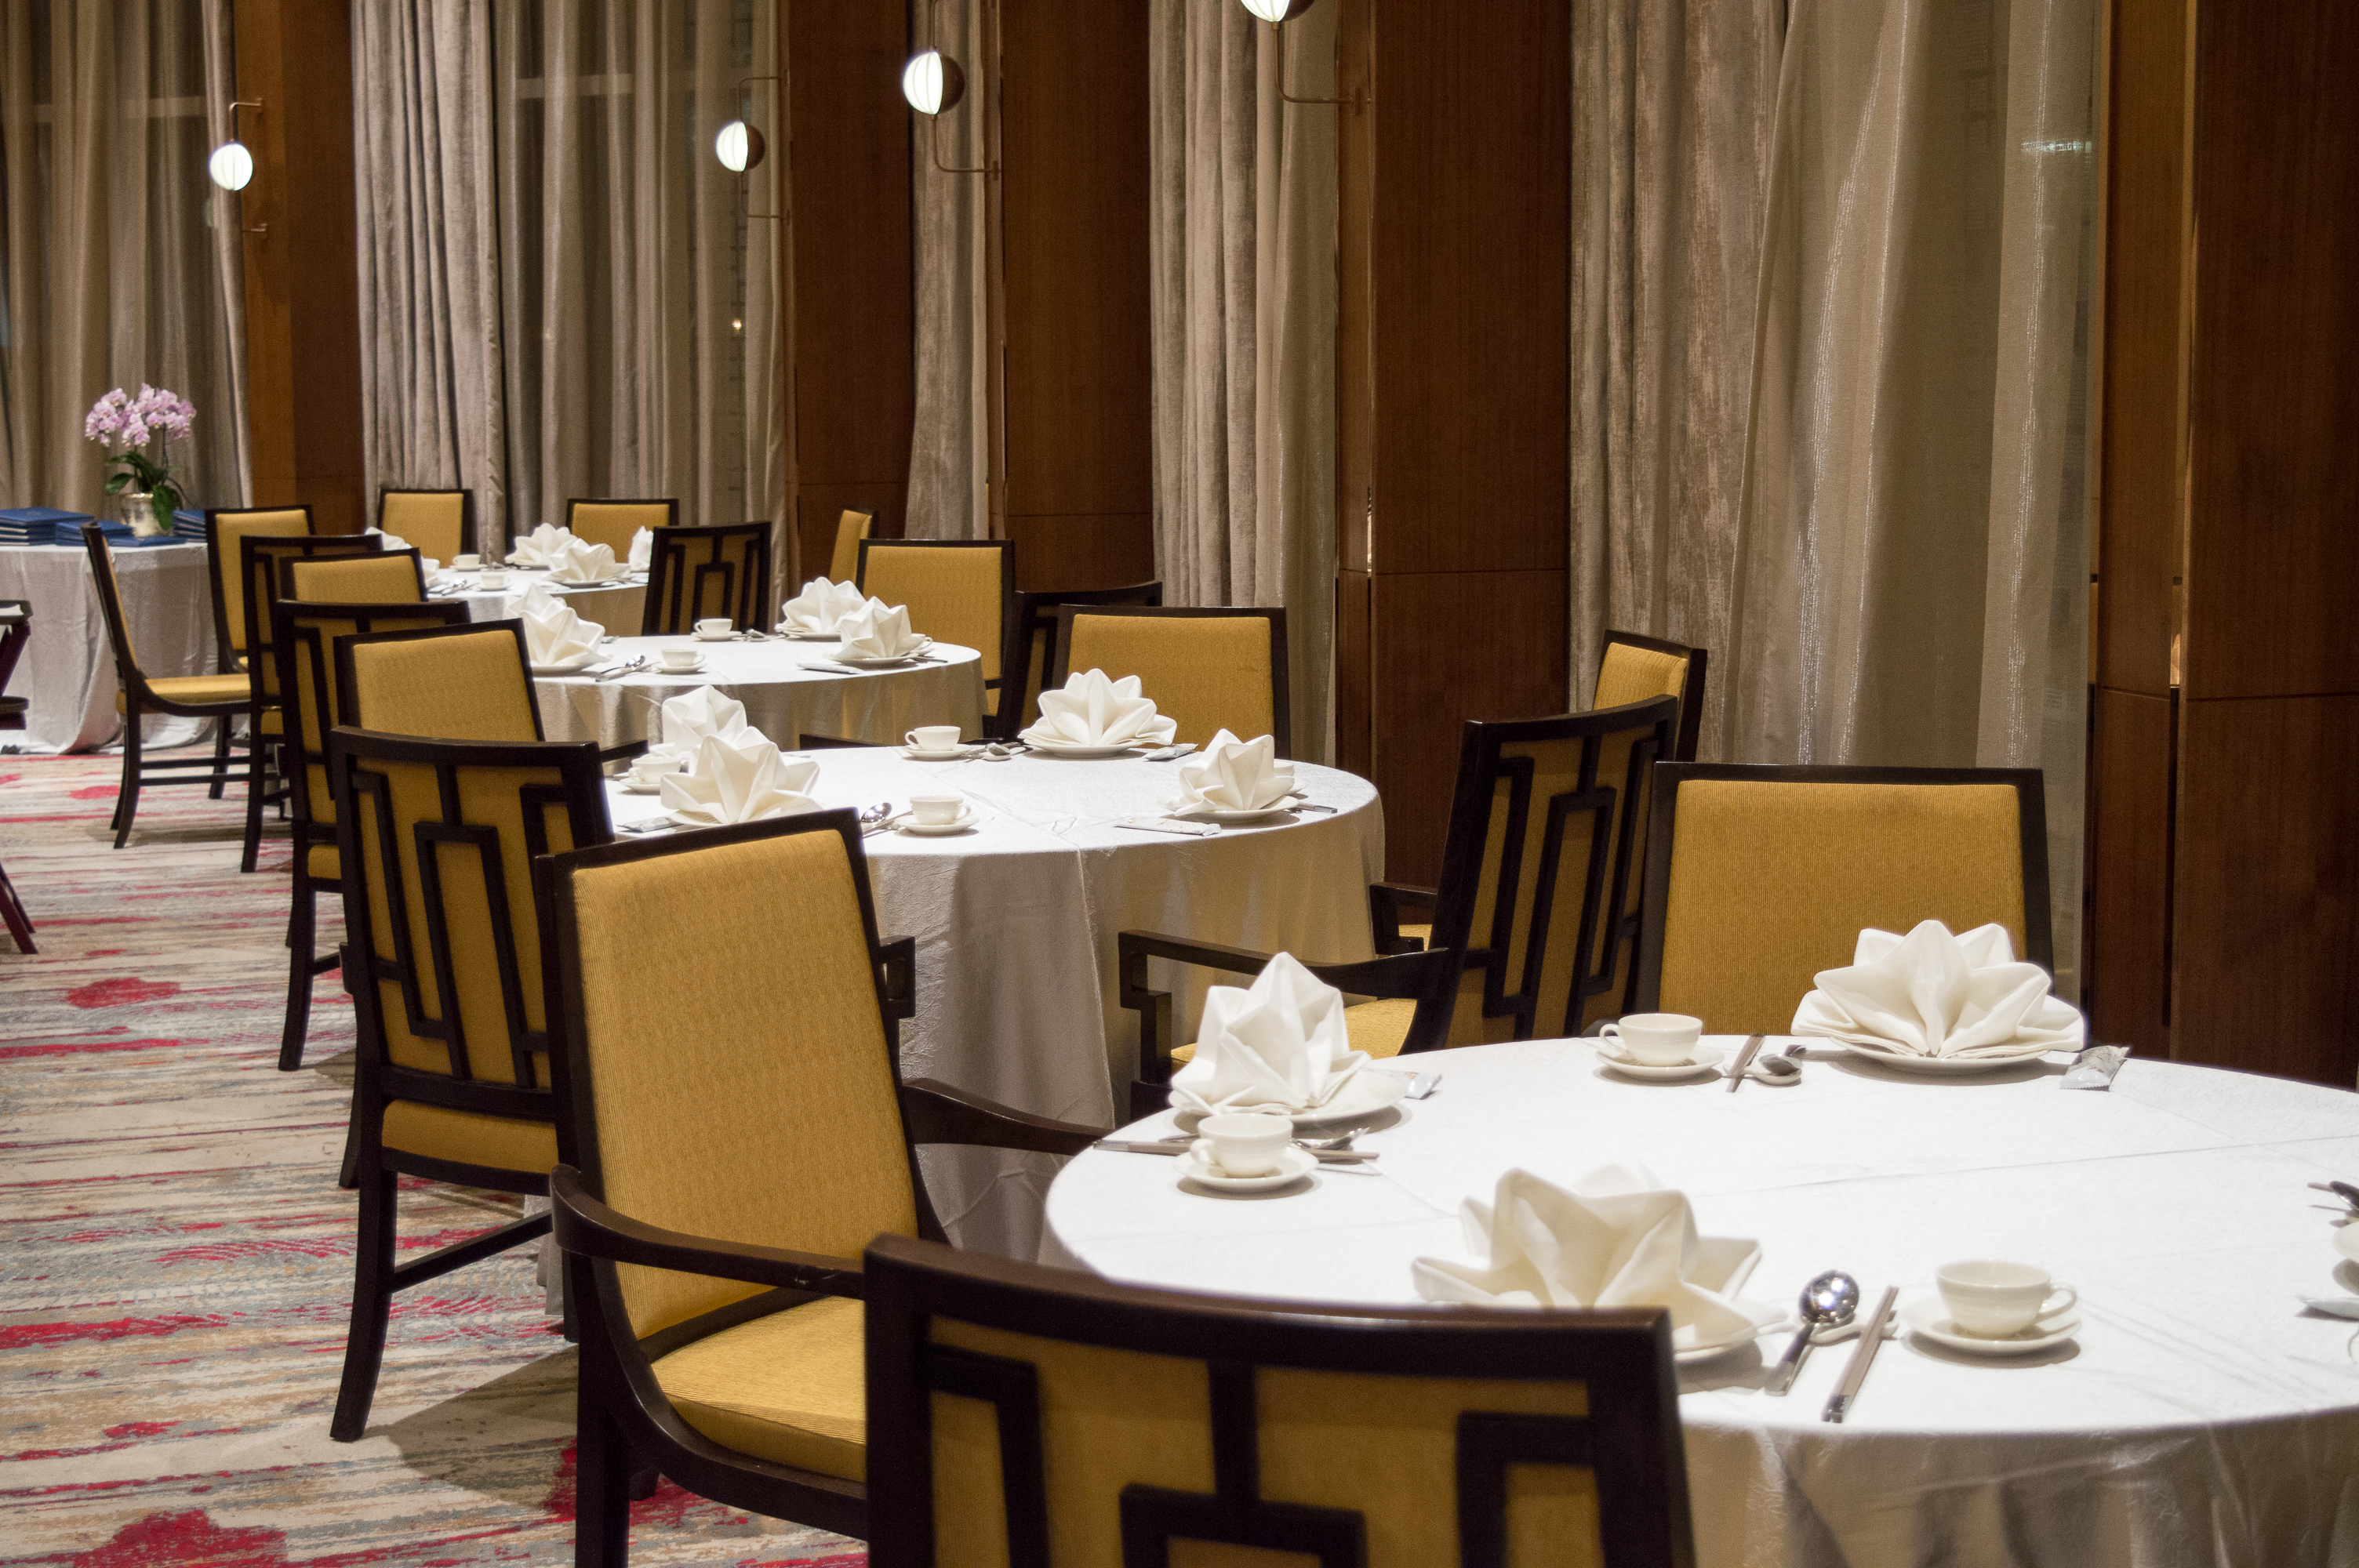 We Had The Privilege To Dine In The Largest Private Room Of The Restaurant  U2013 The Peony Room. A Large White Marble Dining Table With ...